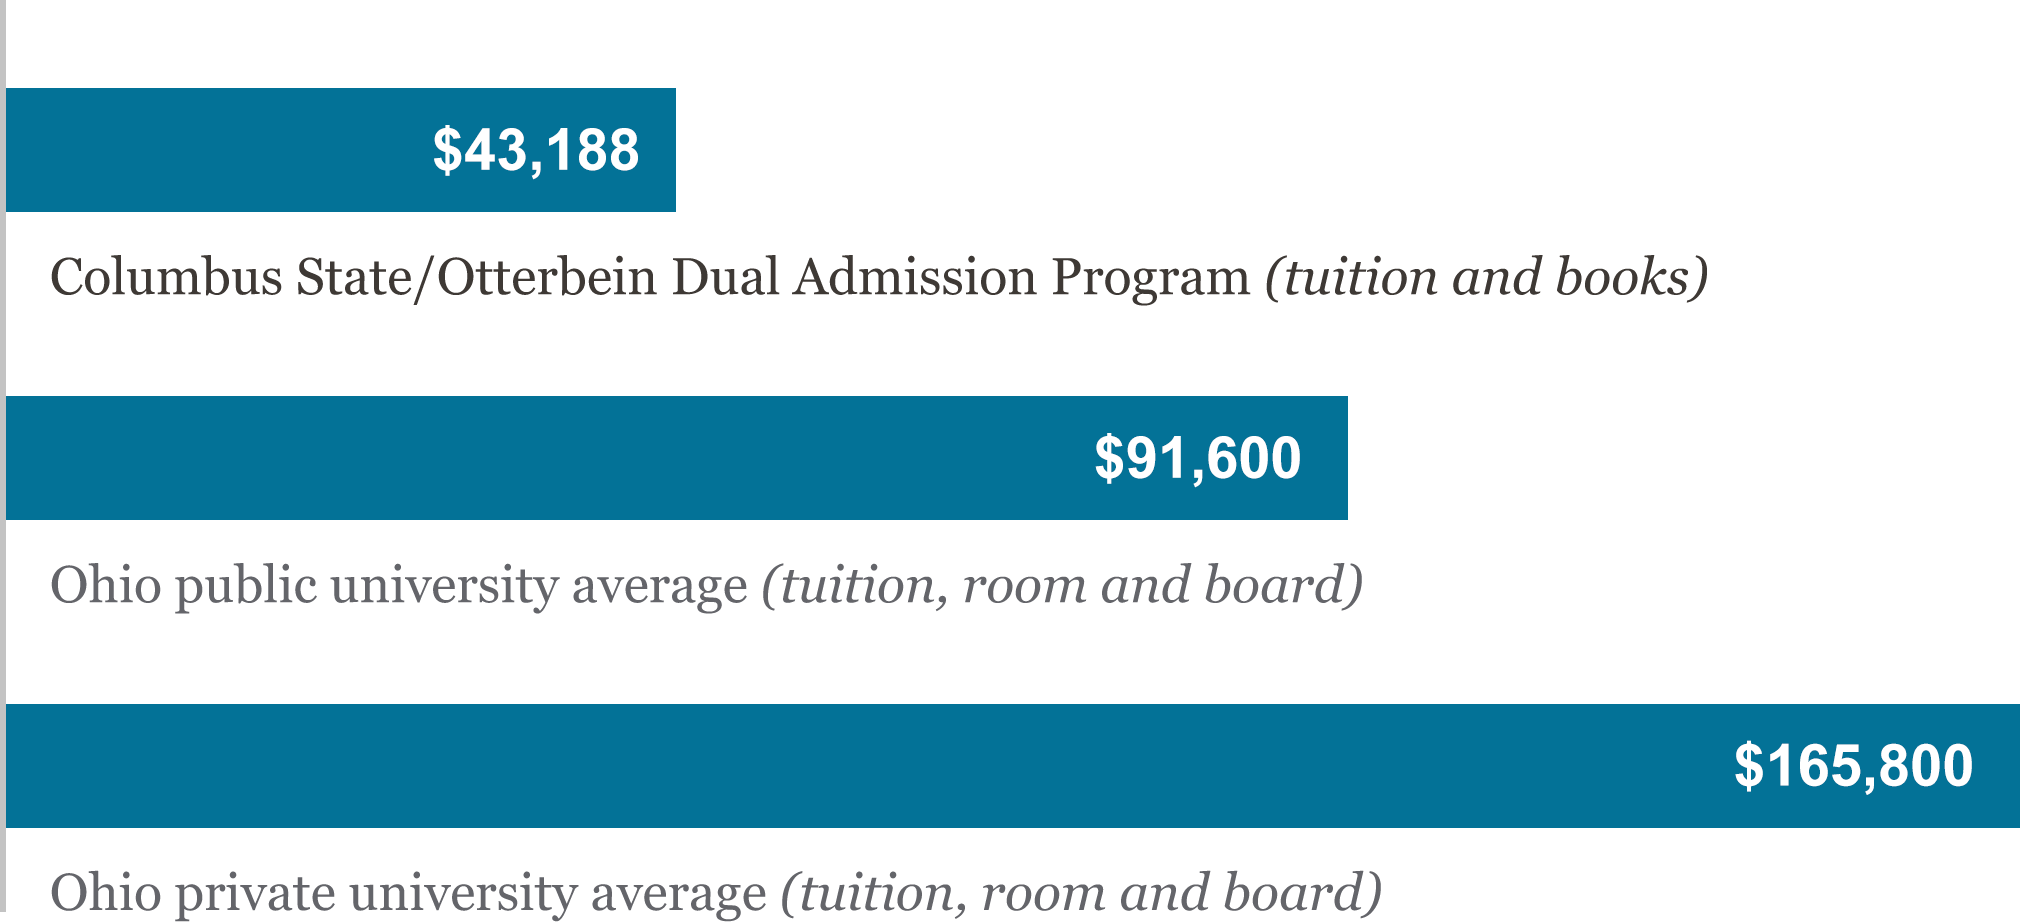 Cost comparison: Columbus State and Otterbein Dual Admission Program costs $43,188, Ohio public university average is $91,600, and Ohio private university average is $165,800